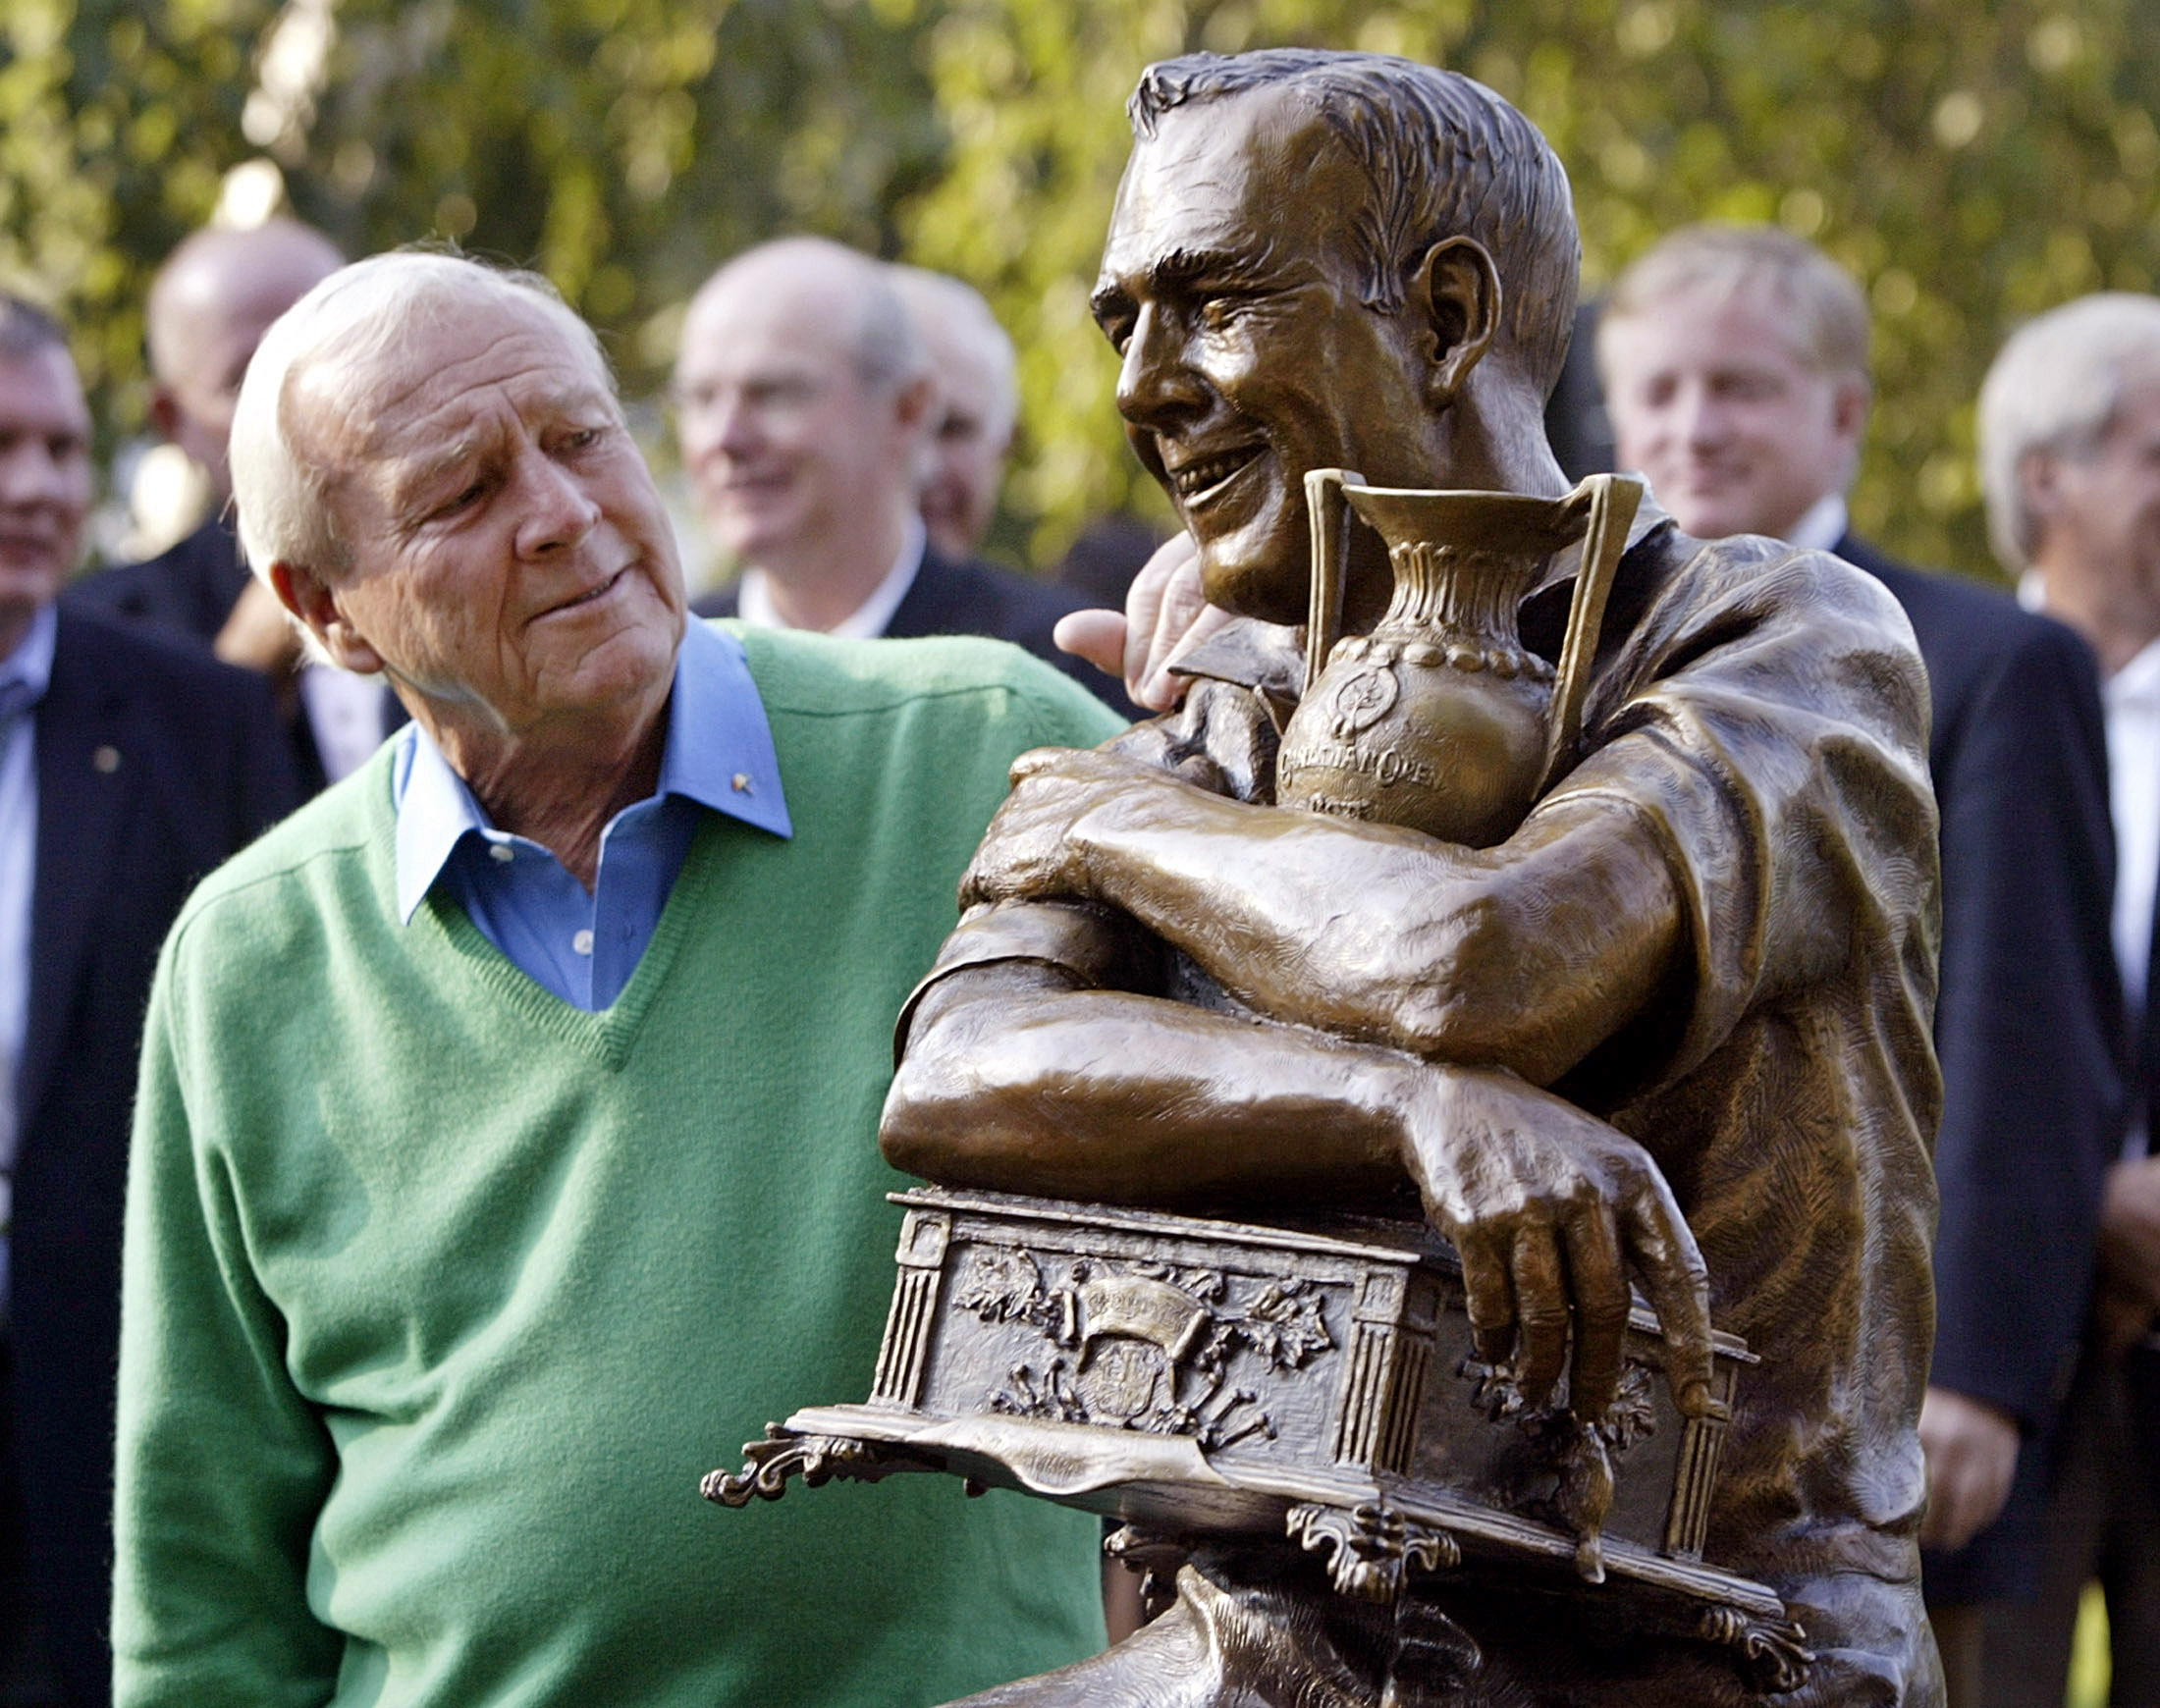 Palmer looks at a statue of himself commemorating the 50th anniversary of his first PGA tour win in 1955 in Toronto.